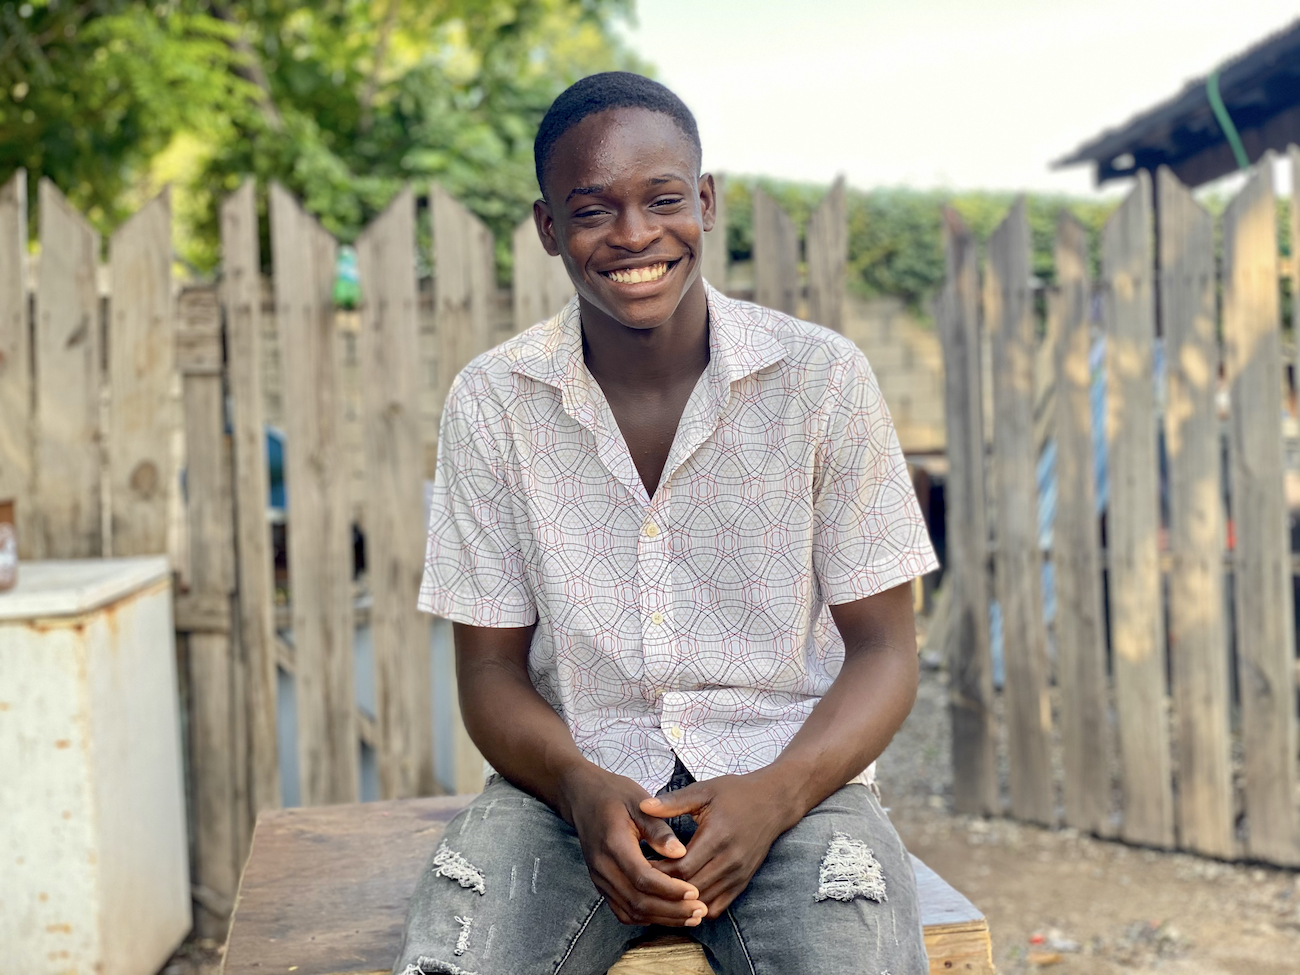 Photograph of Damoie Byfield, aged 16, at a community centre where he receives mentoring under the UNICEF/Peace Management Initiative (PMI) Behavioural Mentorship Programme, near to his home in Kingston, Jamaica.